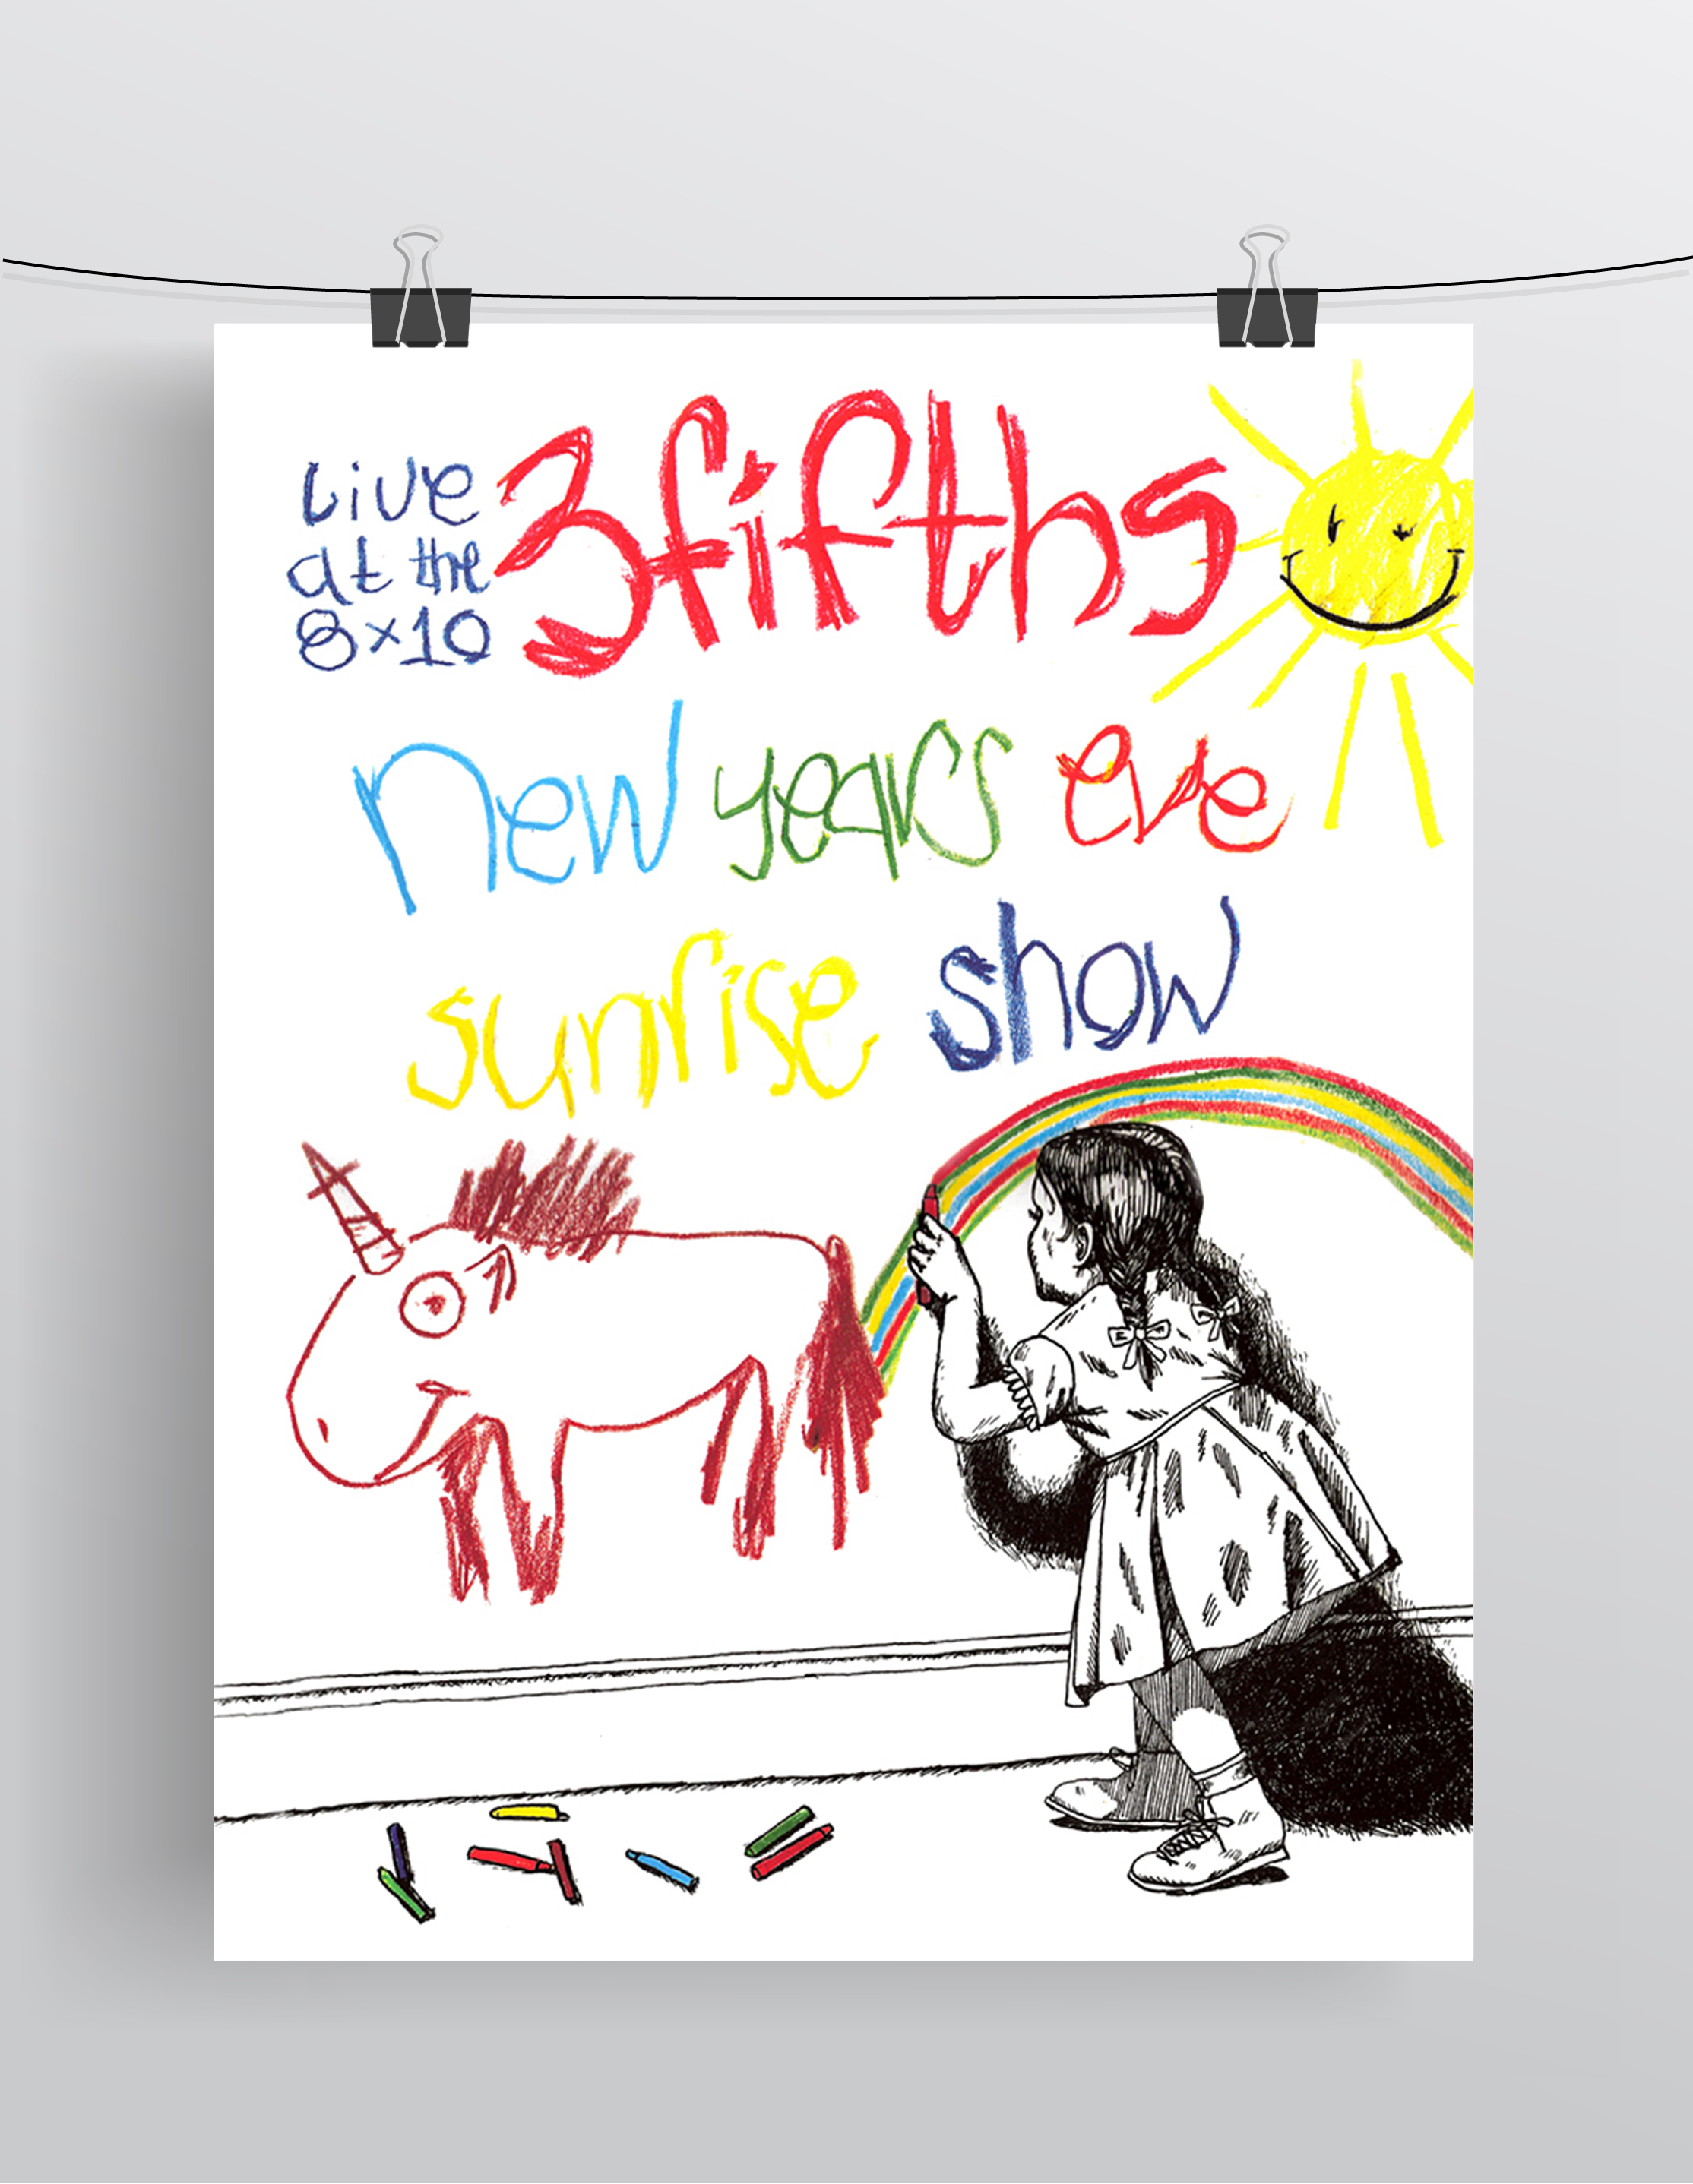 3fifths New Years Eve Sunrise Show  Ink, Crayon